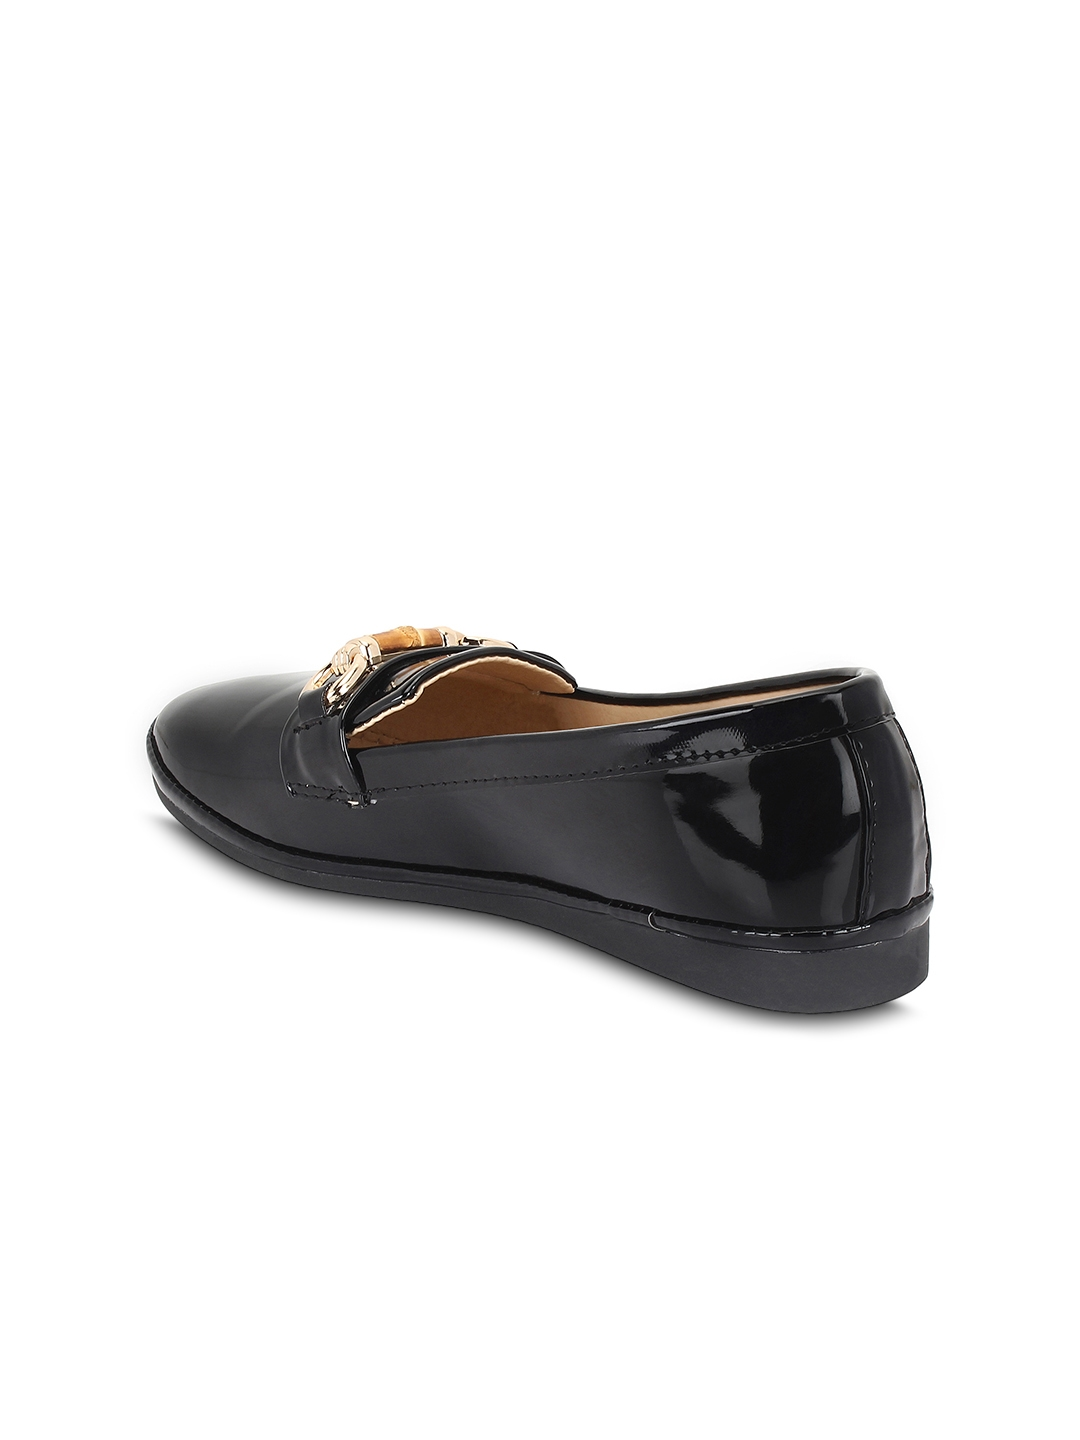 32b5333e0d7 Buy Qoo10 Women Black Solid Synthetic Ballerinas - Flats for Women ...